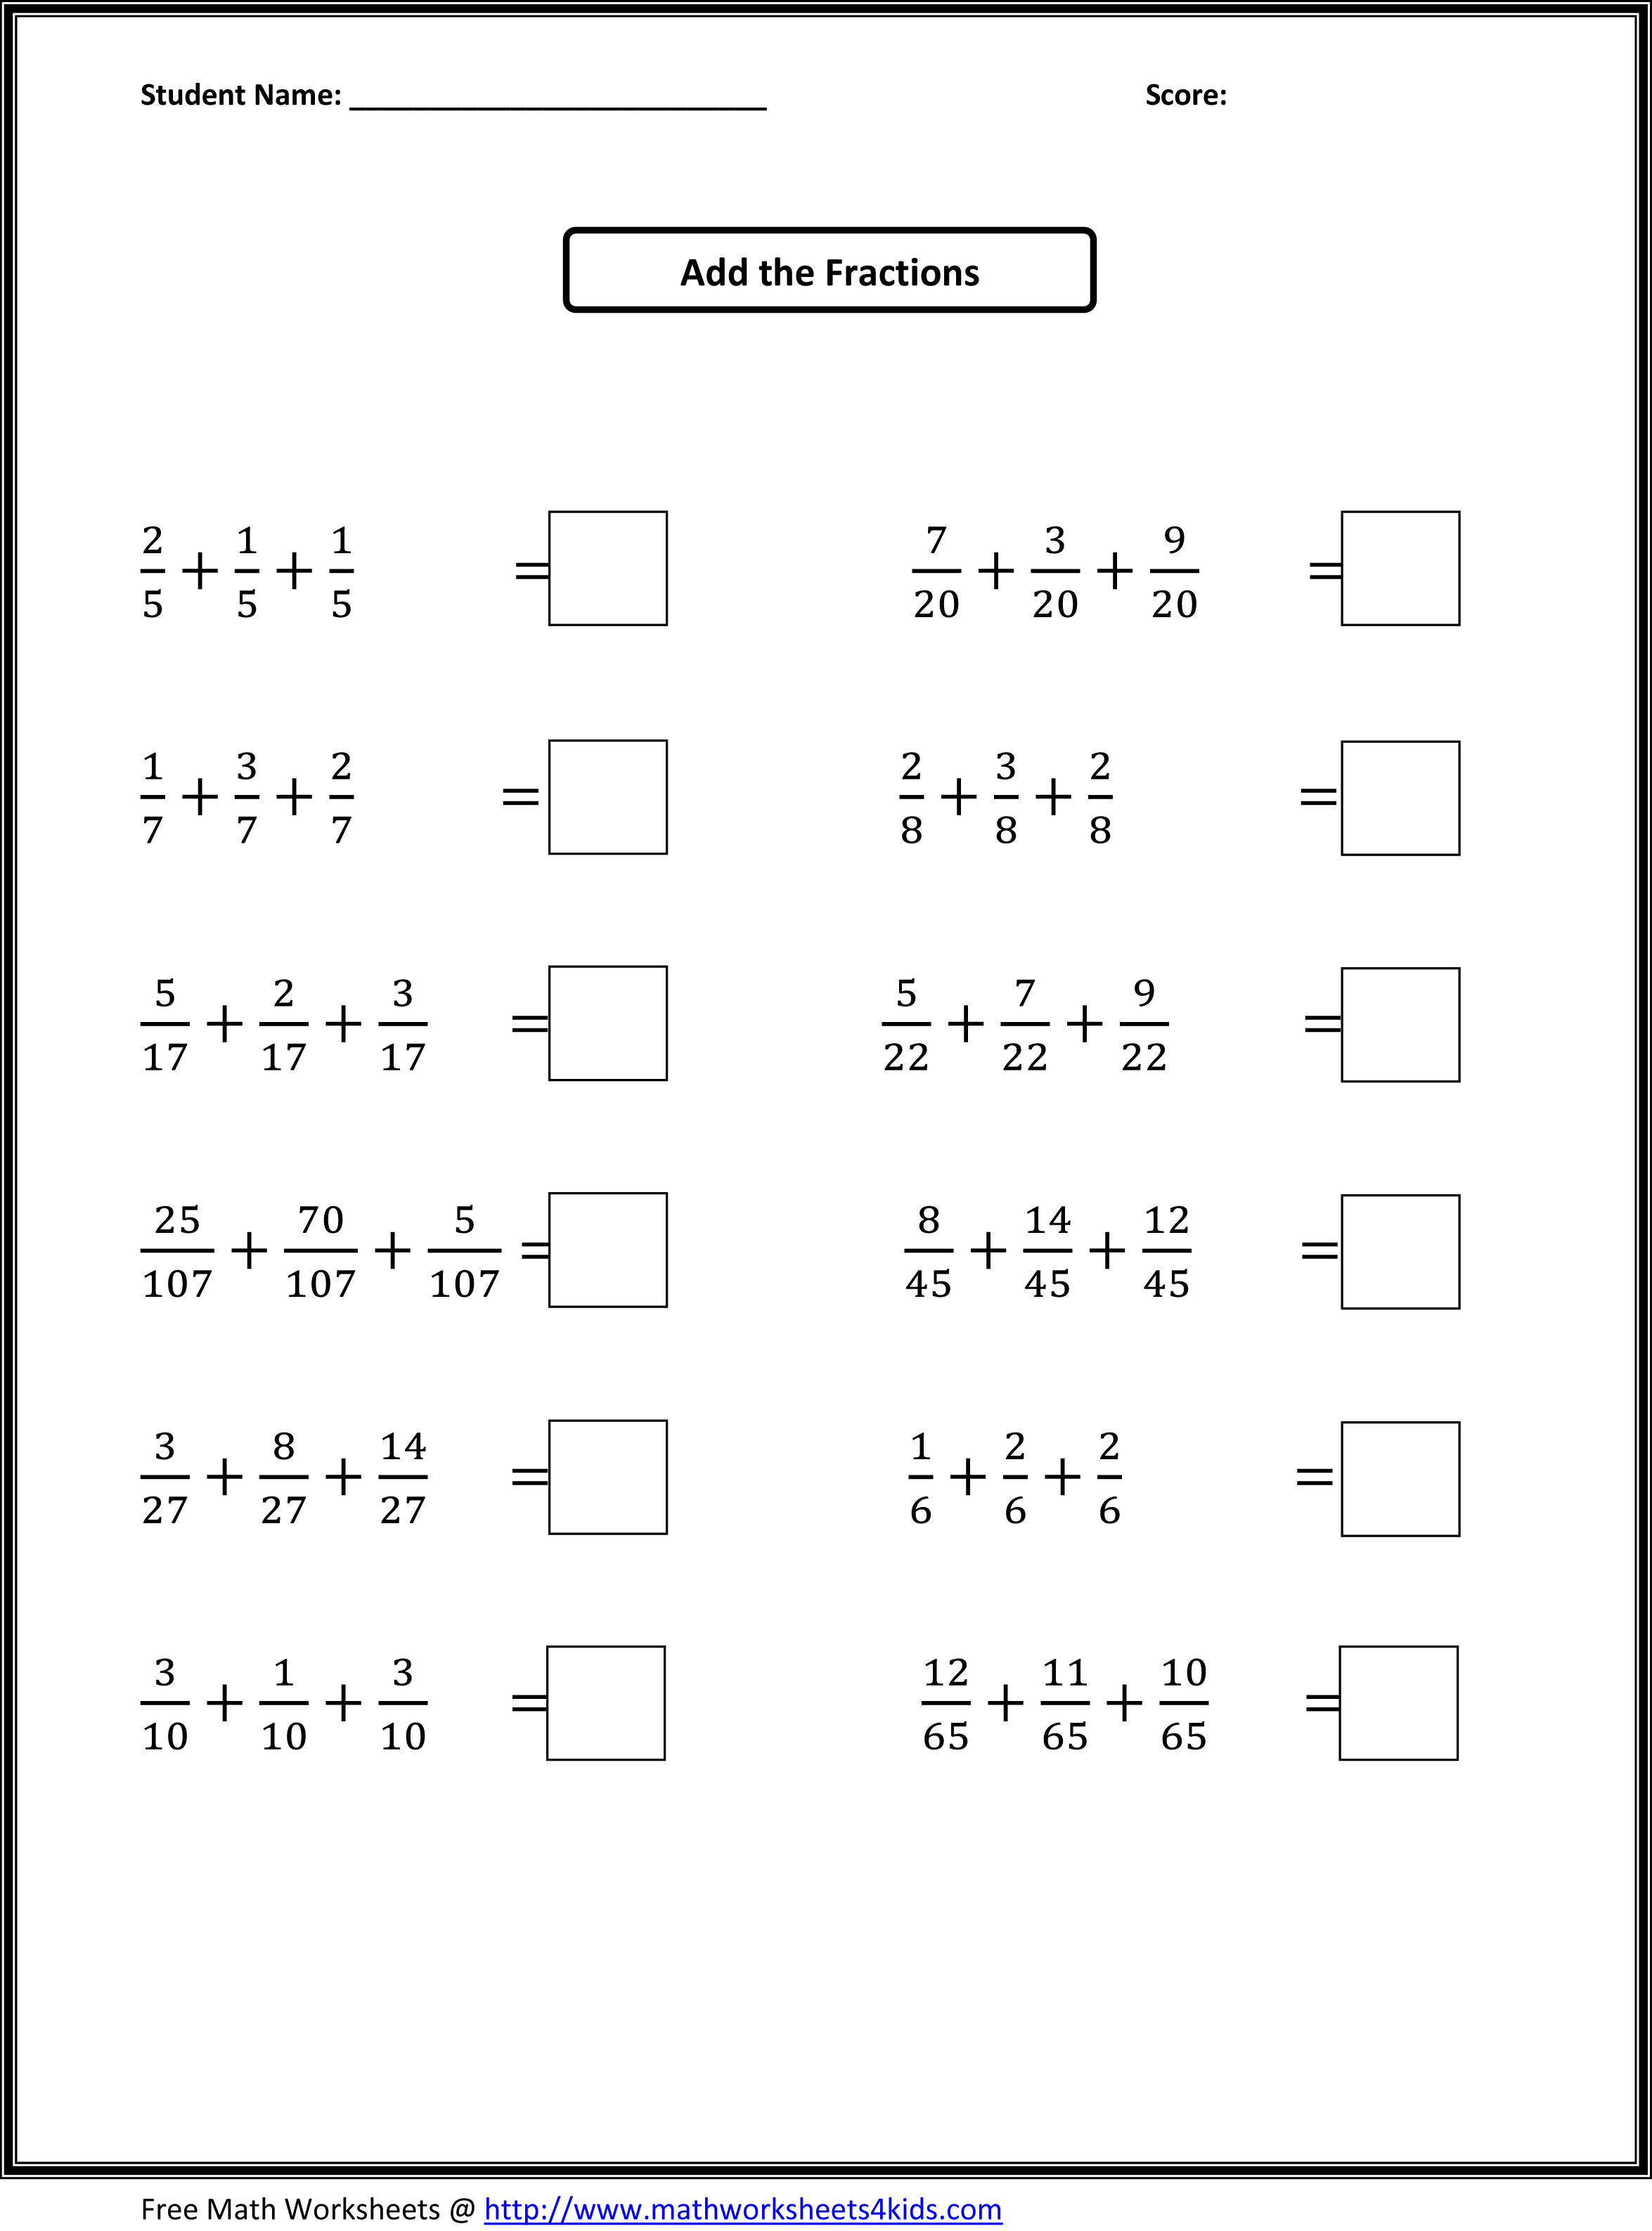 Worksheet Adding Fractions Worksheets 4th Grade fraction worksheets 4th grade kids activities converting improper fractions mixed numbers writing printable free adding print